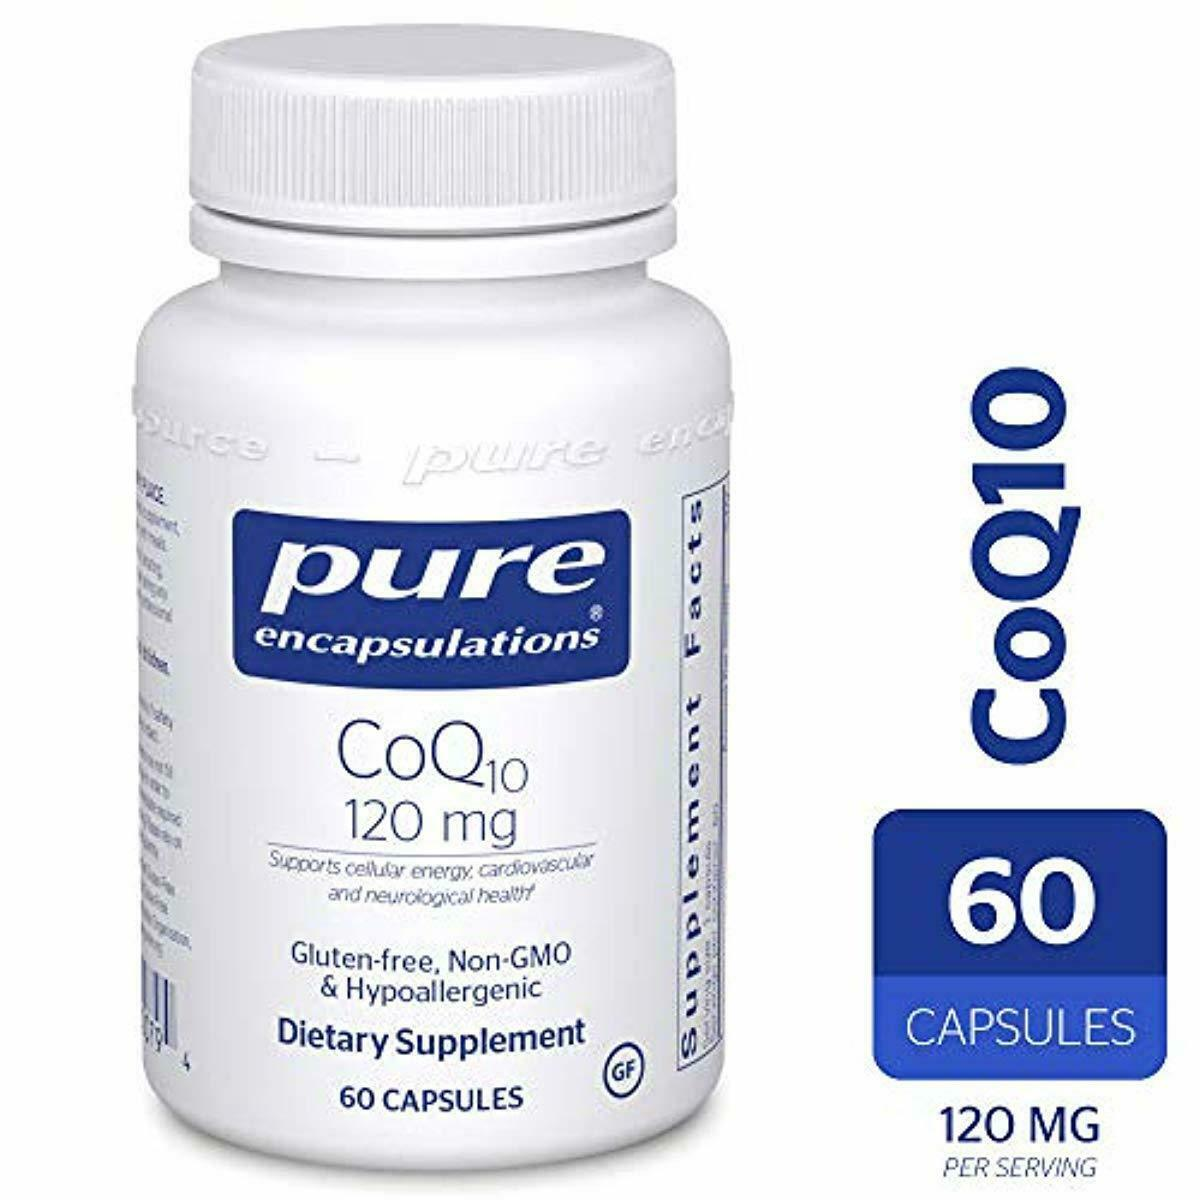 Pure Encapsulations - CoQ10 120 mg - Hypoallergenic Coenzyme